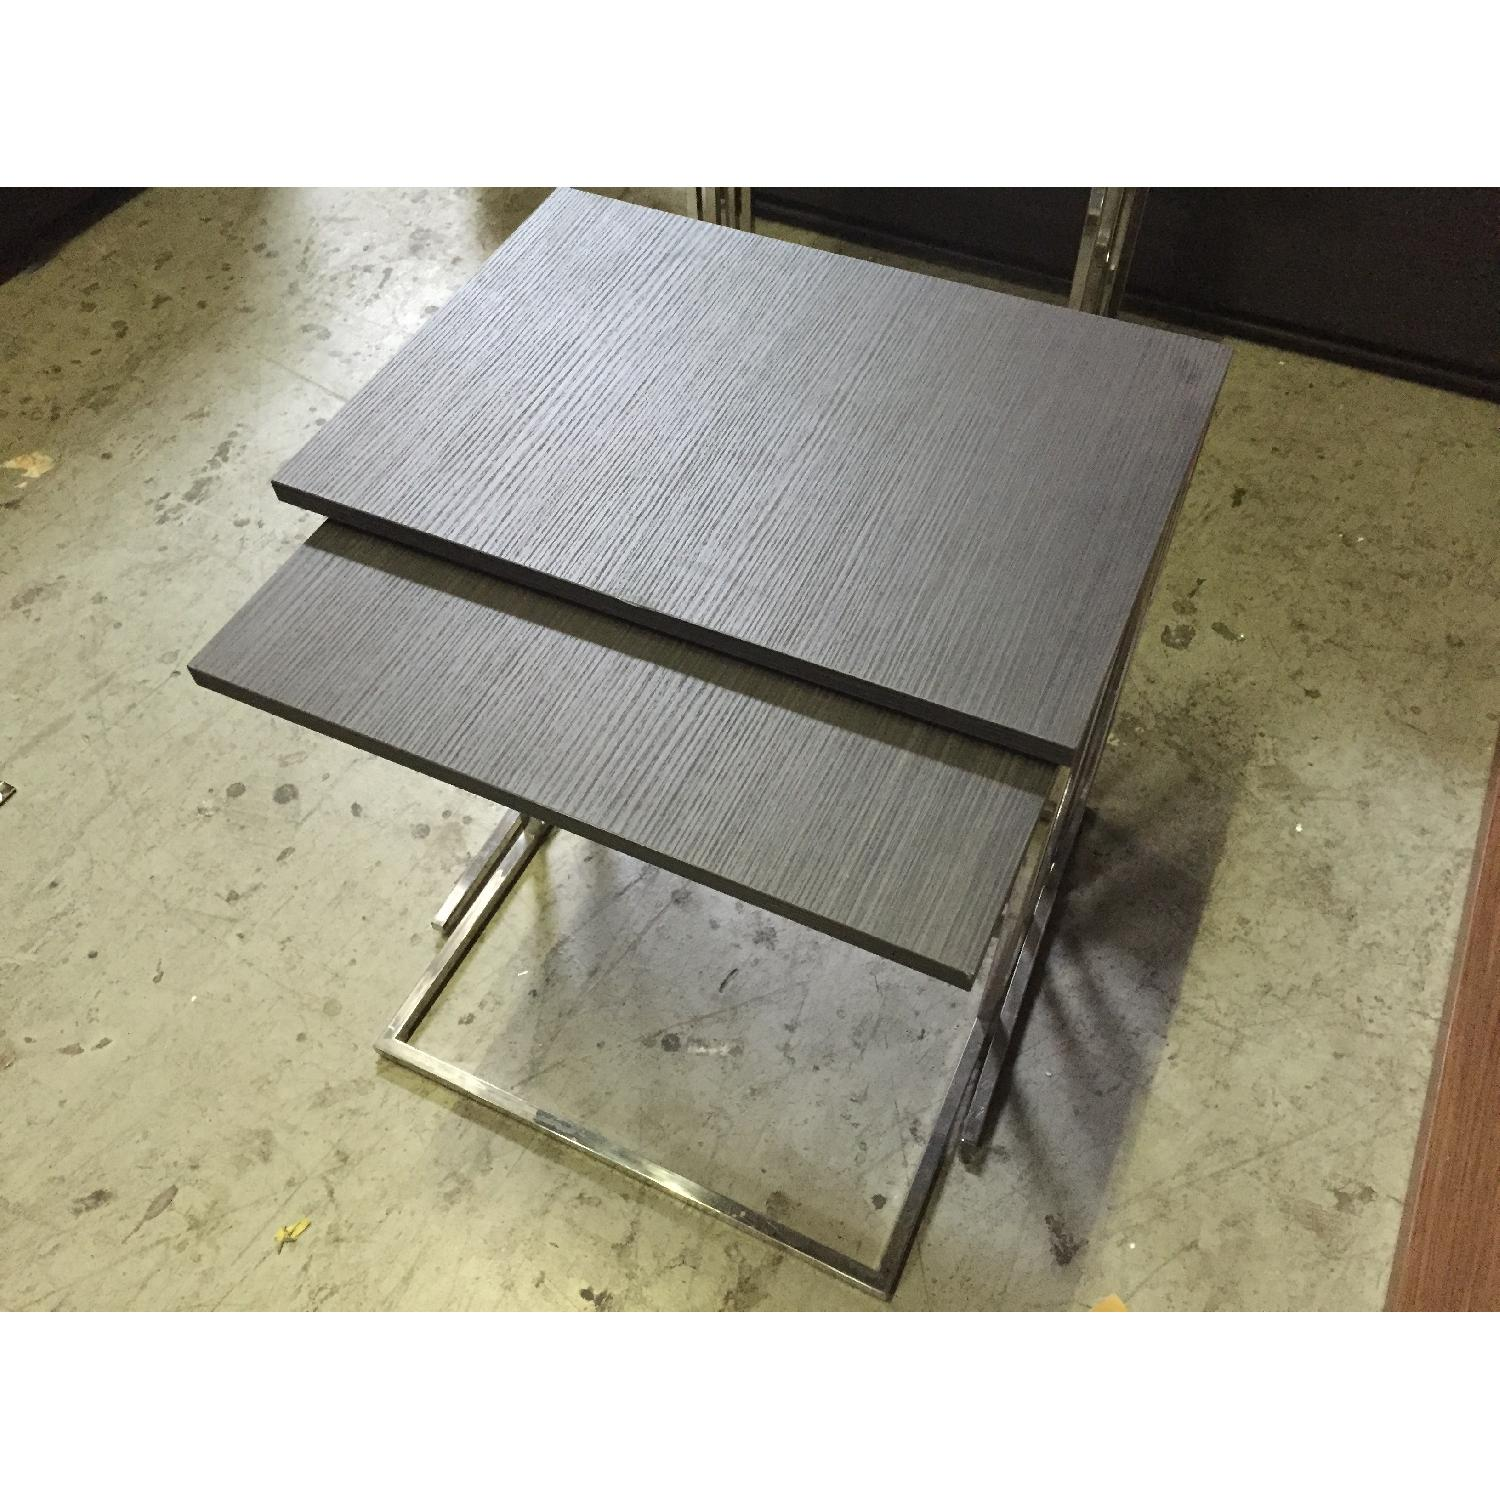 Lazzoni Brown Wood Nesting Tables - image-2